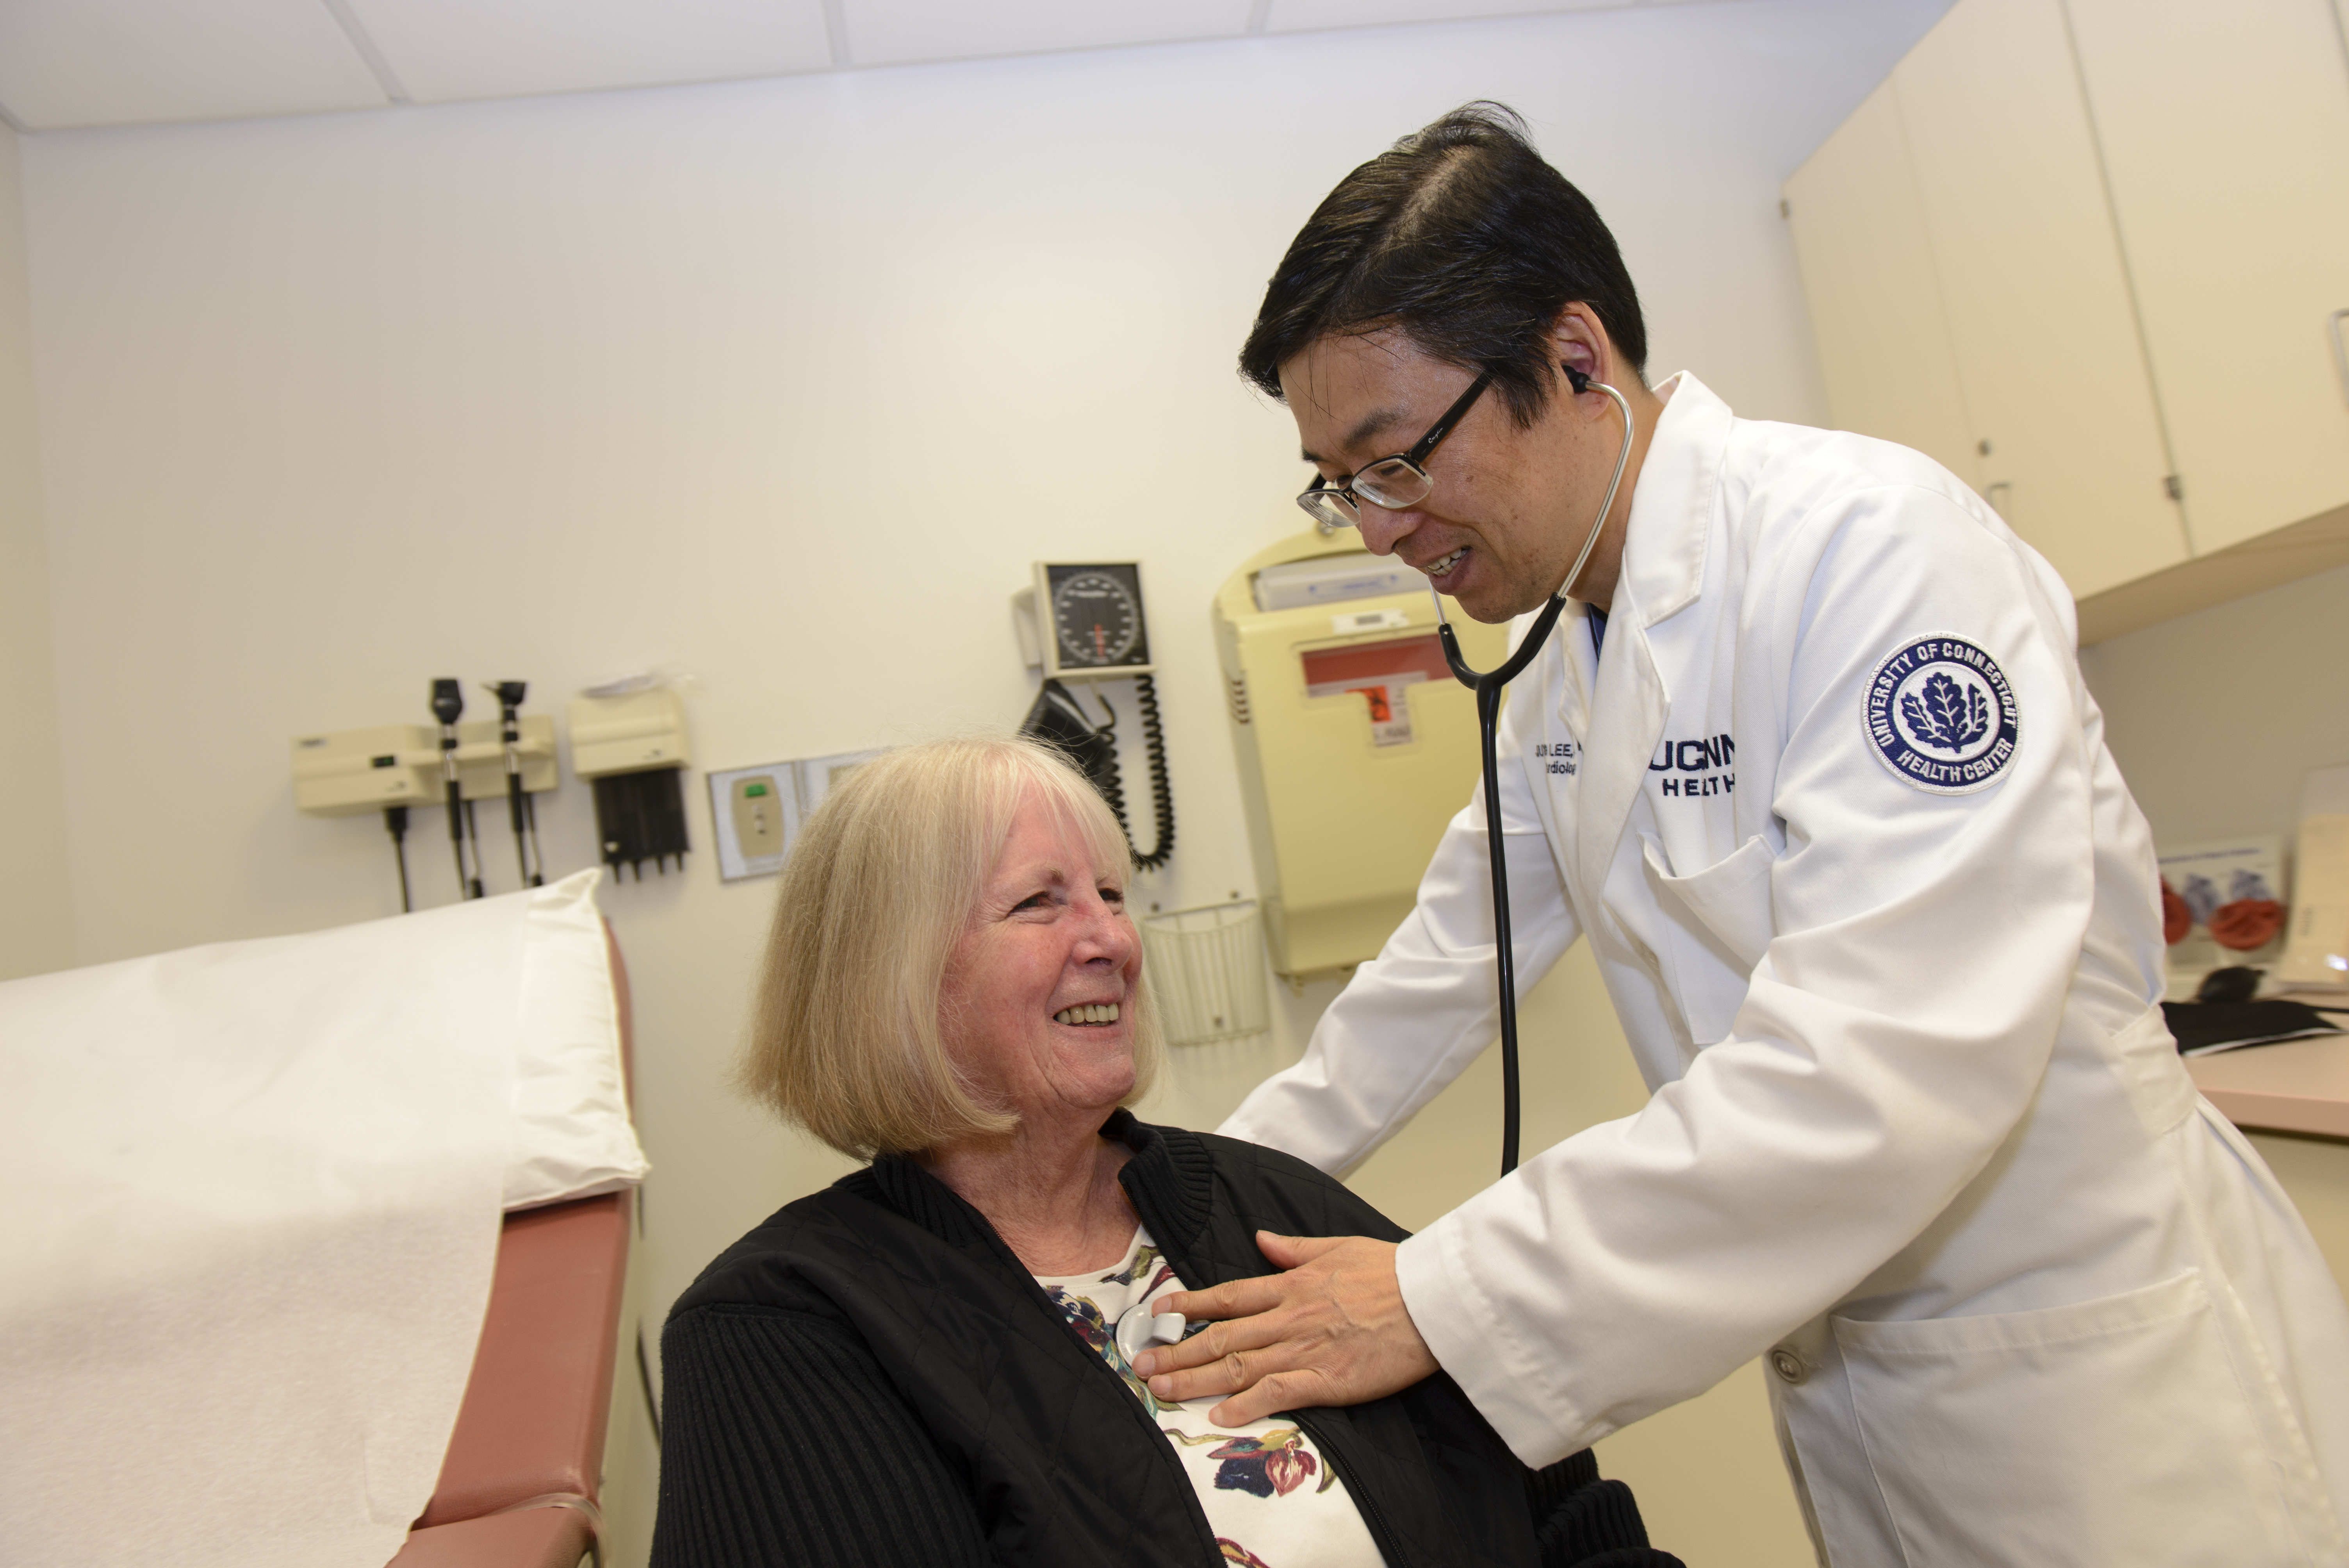 After her Fitbit alerted her to serious heart trouble, 73-year-old Patricia Lauder was successfully treated at UConn Health's Calhoun Cardiology Center by cardiologist Dr. JuYong Lee. (Janine Gelineau/UConn Health Photo)